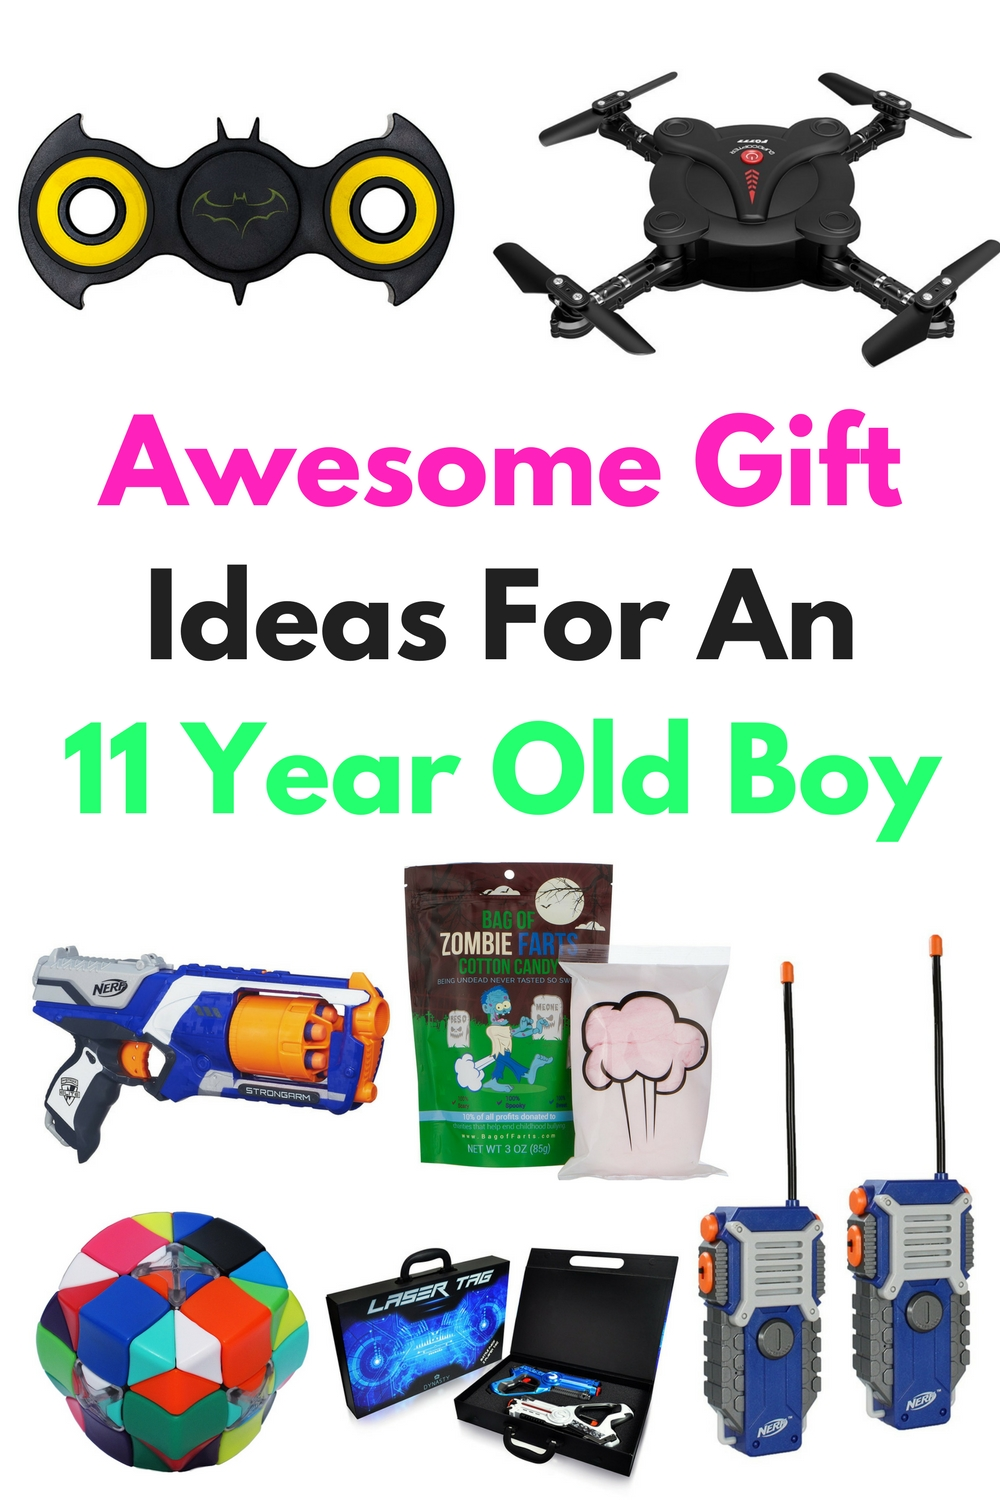 11 Year Old Blonde Girl: Awesome Gift Ideas For An 11 Year Old Boy